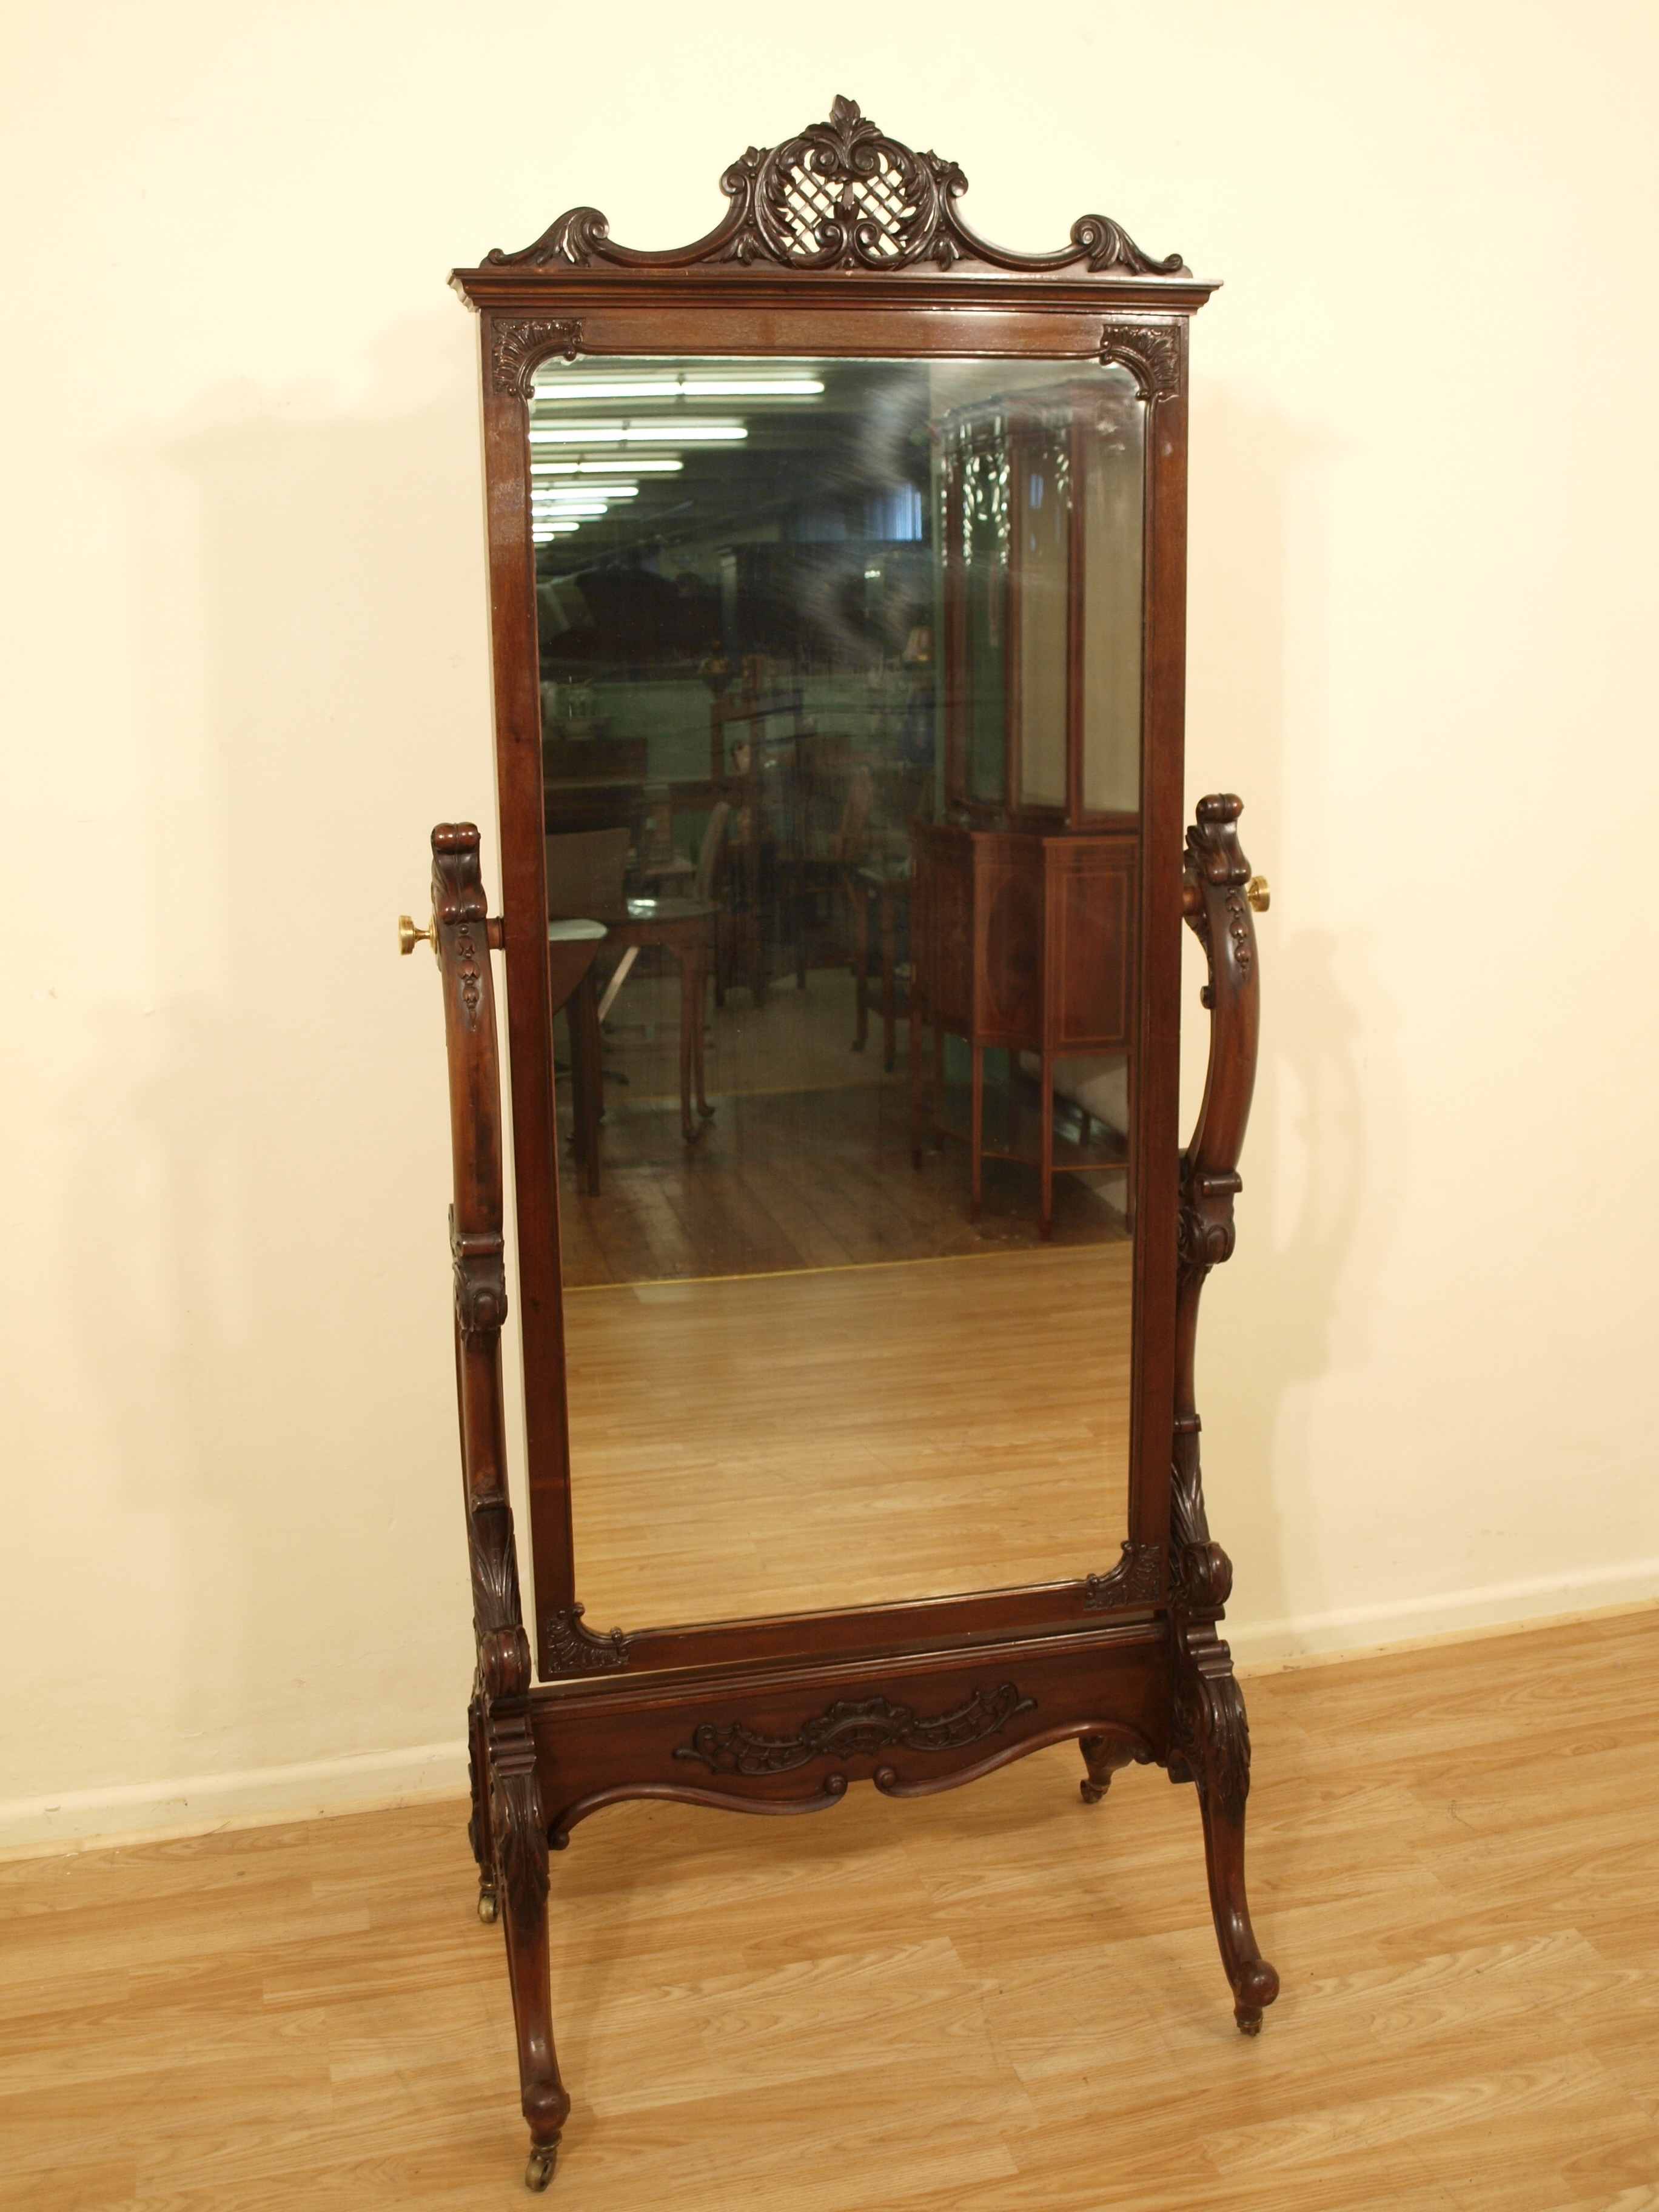 Chavel Mirror Cheval Mirror Pinterest Cheval Mirror Within Oval Freestanding Mirror (Image 3 of 15)